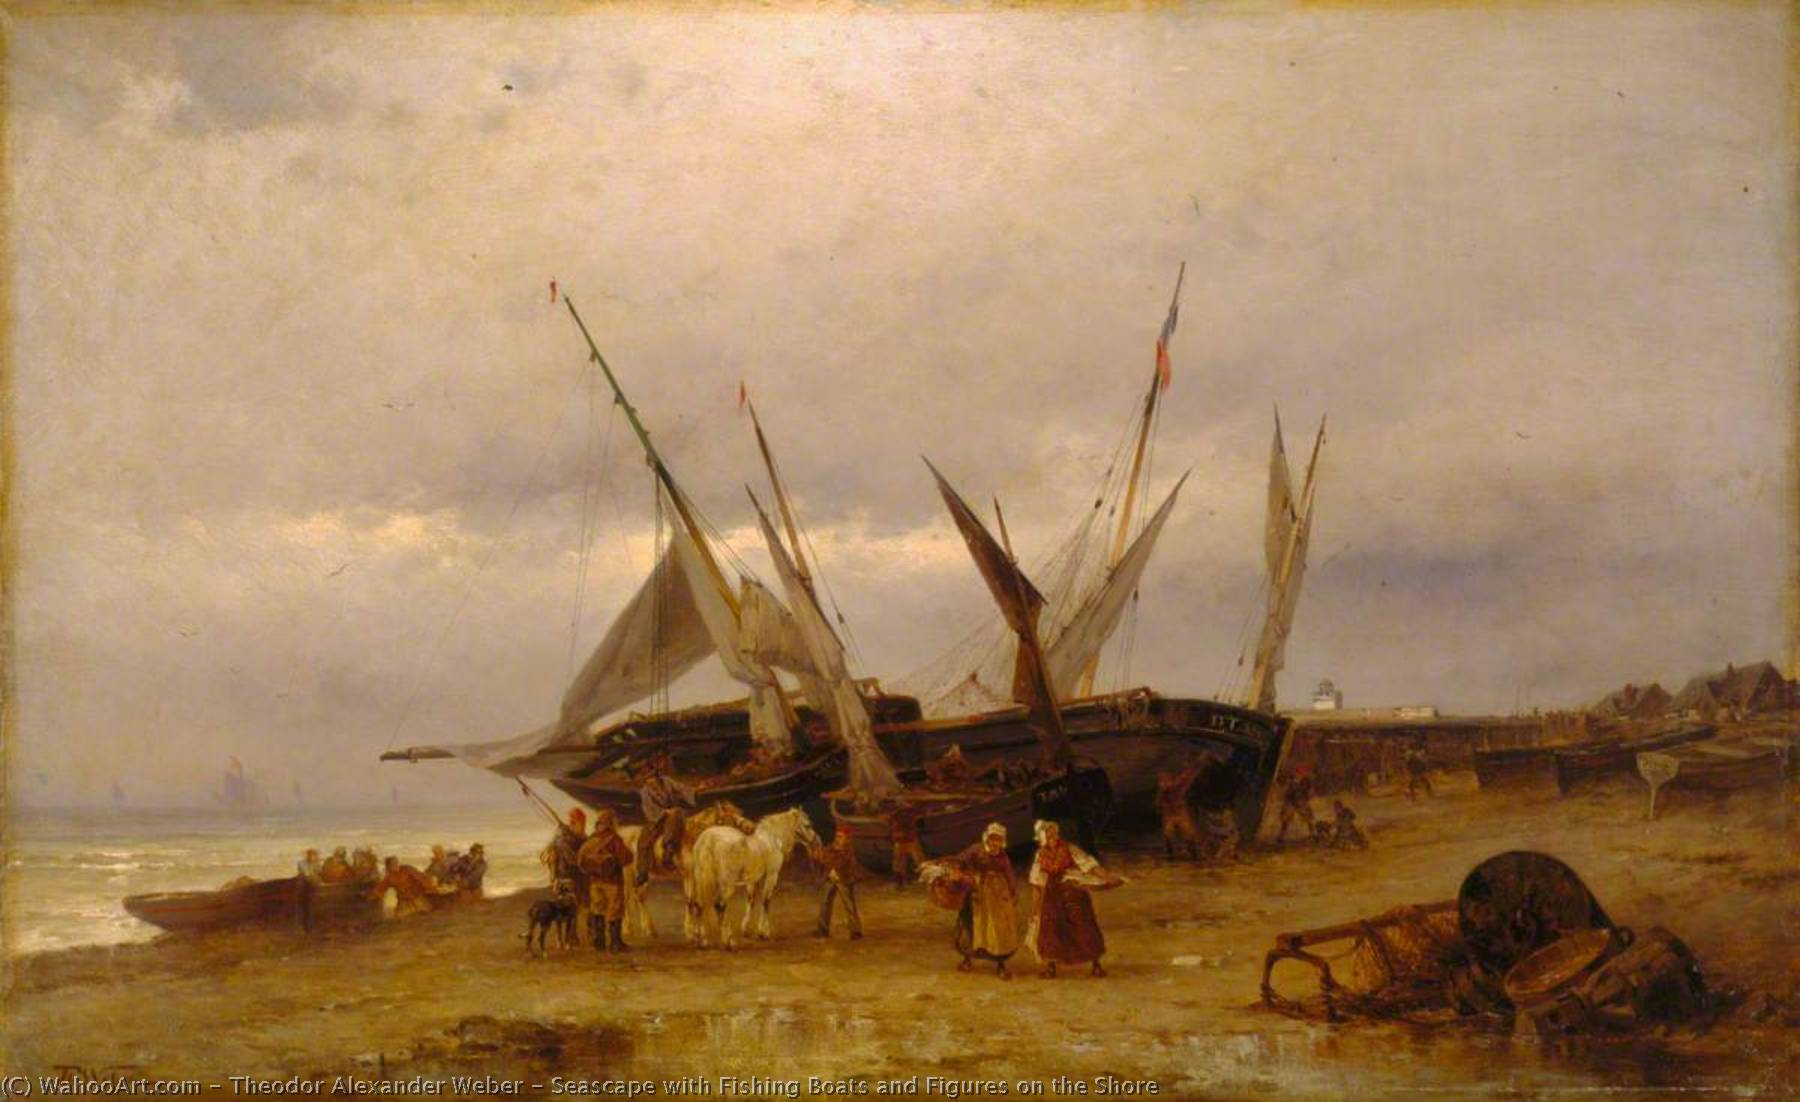 Seascape with Fishing Boats and Figures on the Shore, Oil On Canvas by Theodor Alexander Weber (1838-1907)